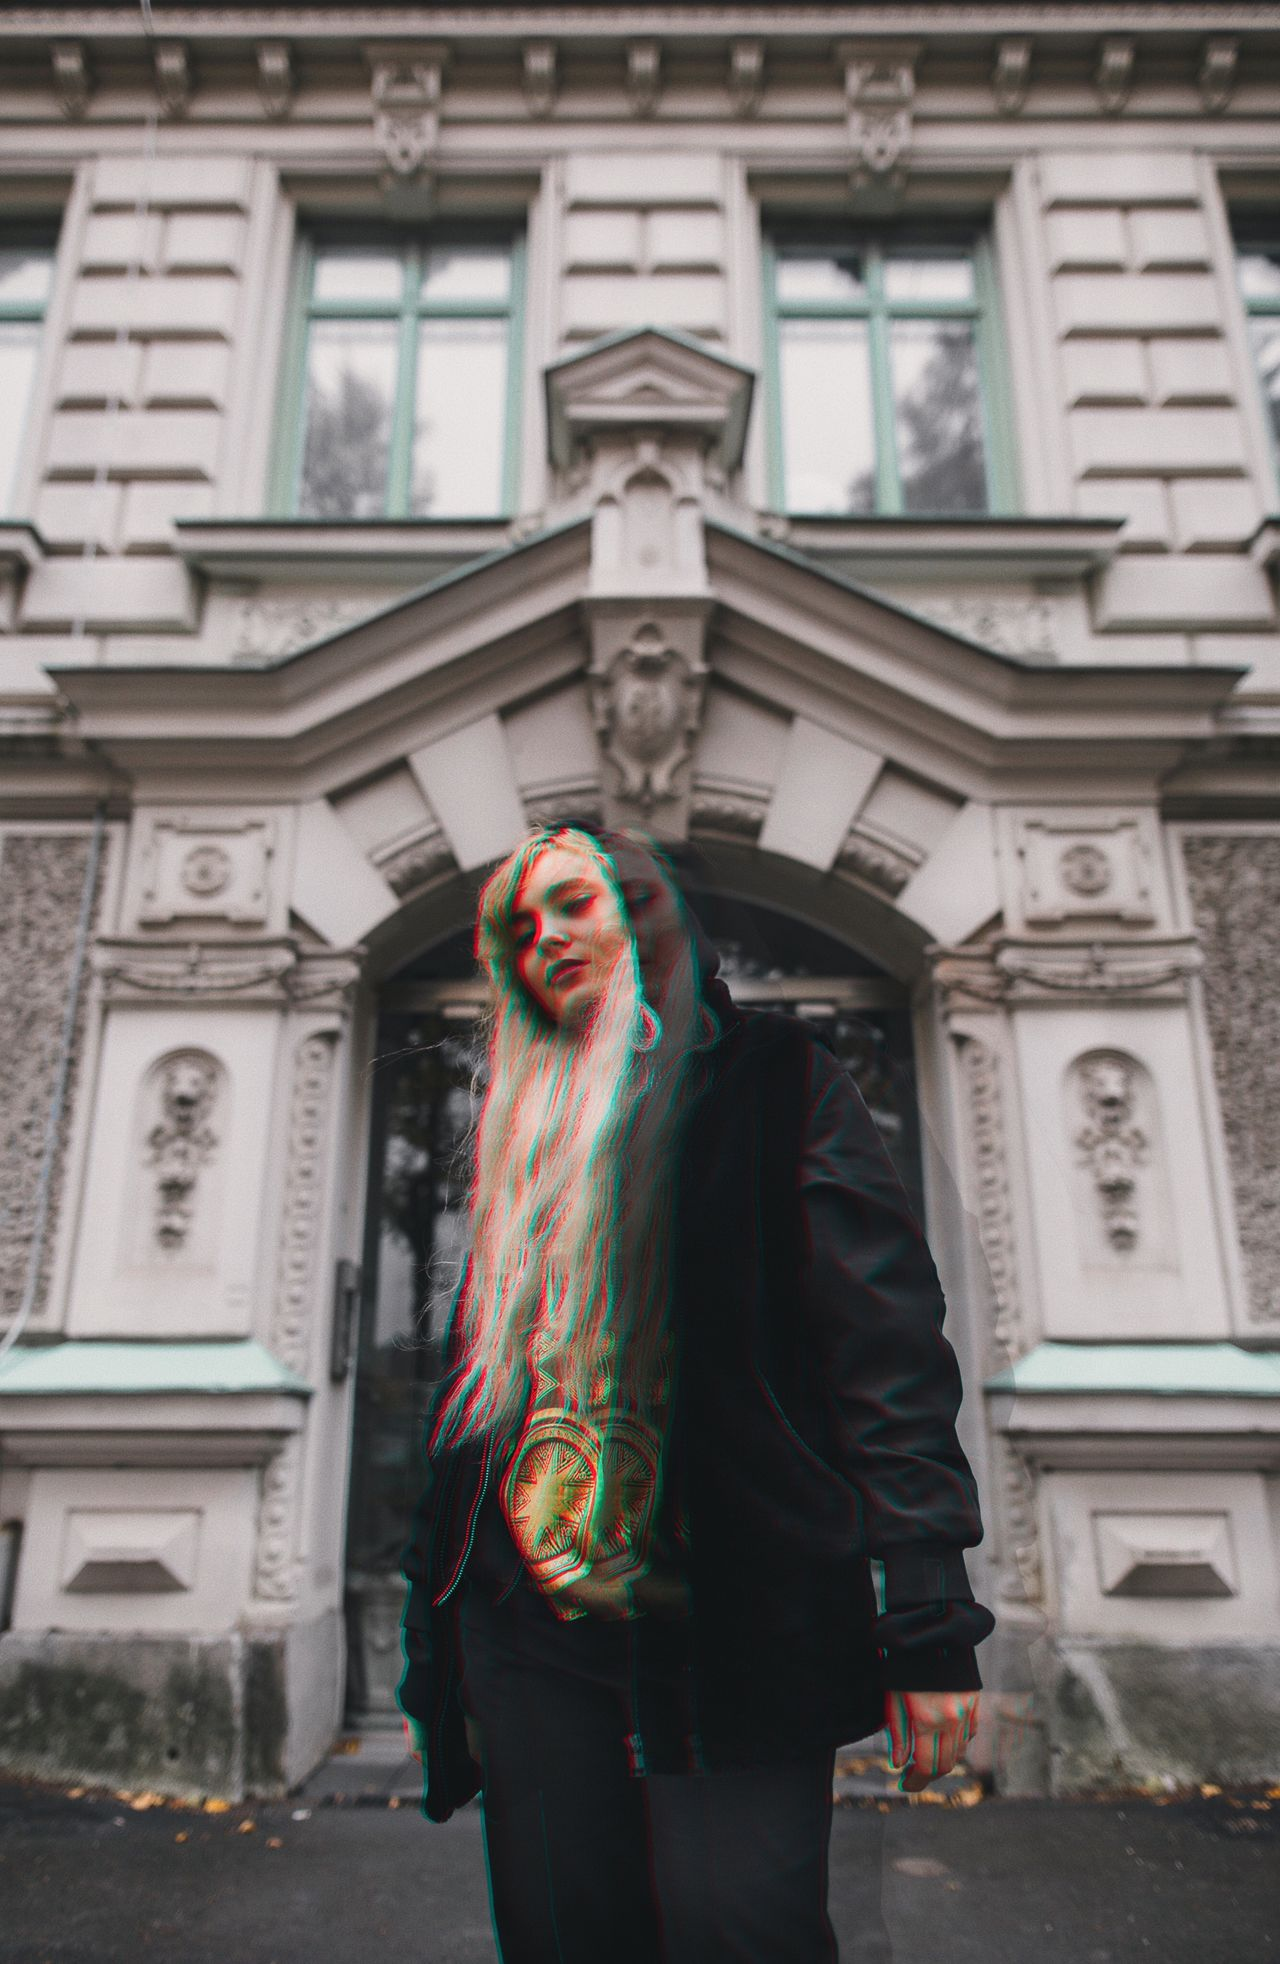 Fashion photooftheday model street fashion photoshop twitch portrait Portrait of a Woman Architecture clothes urban Low angle view street Streetwear casual clothing Sweden gothenburg people Portraits portrait photography EyeEm Selects clothing Second Acts